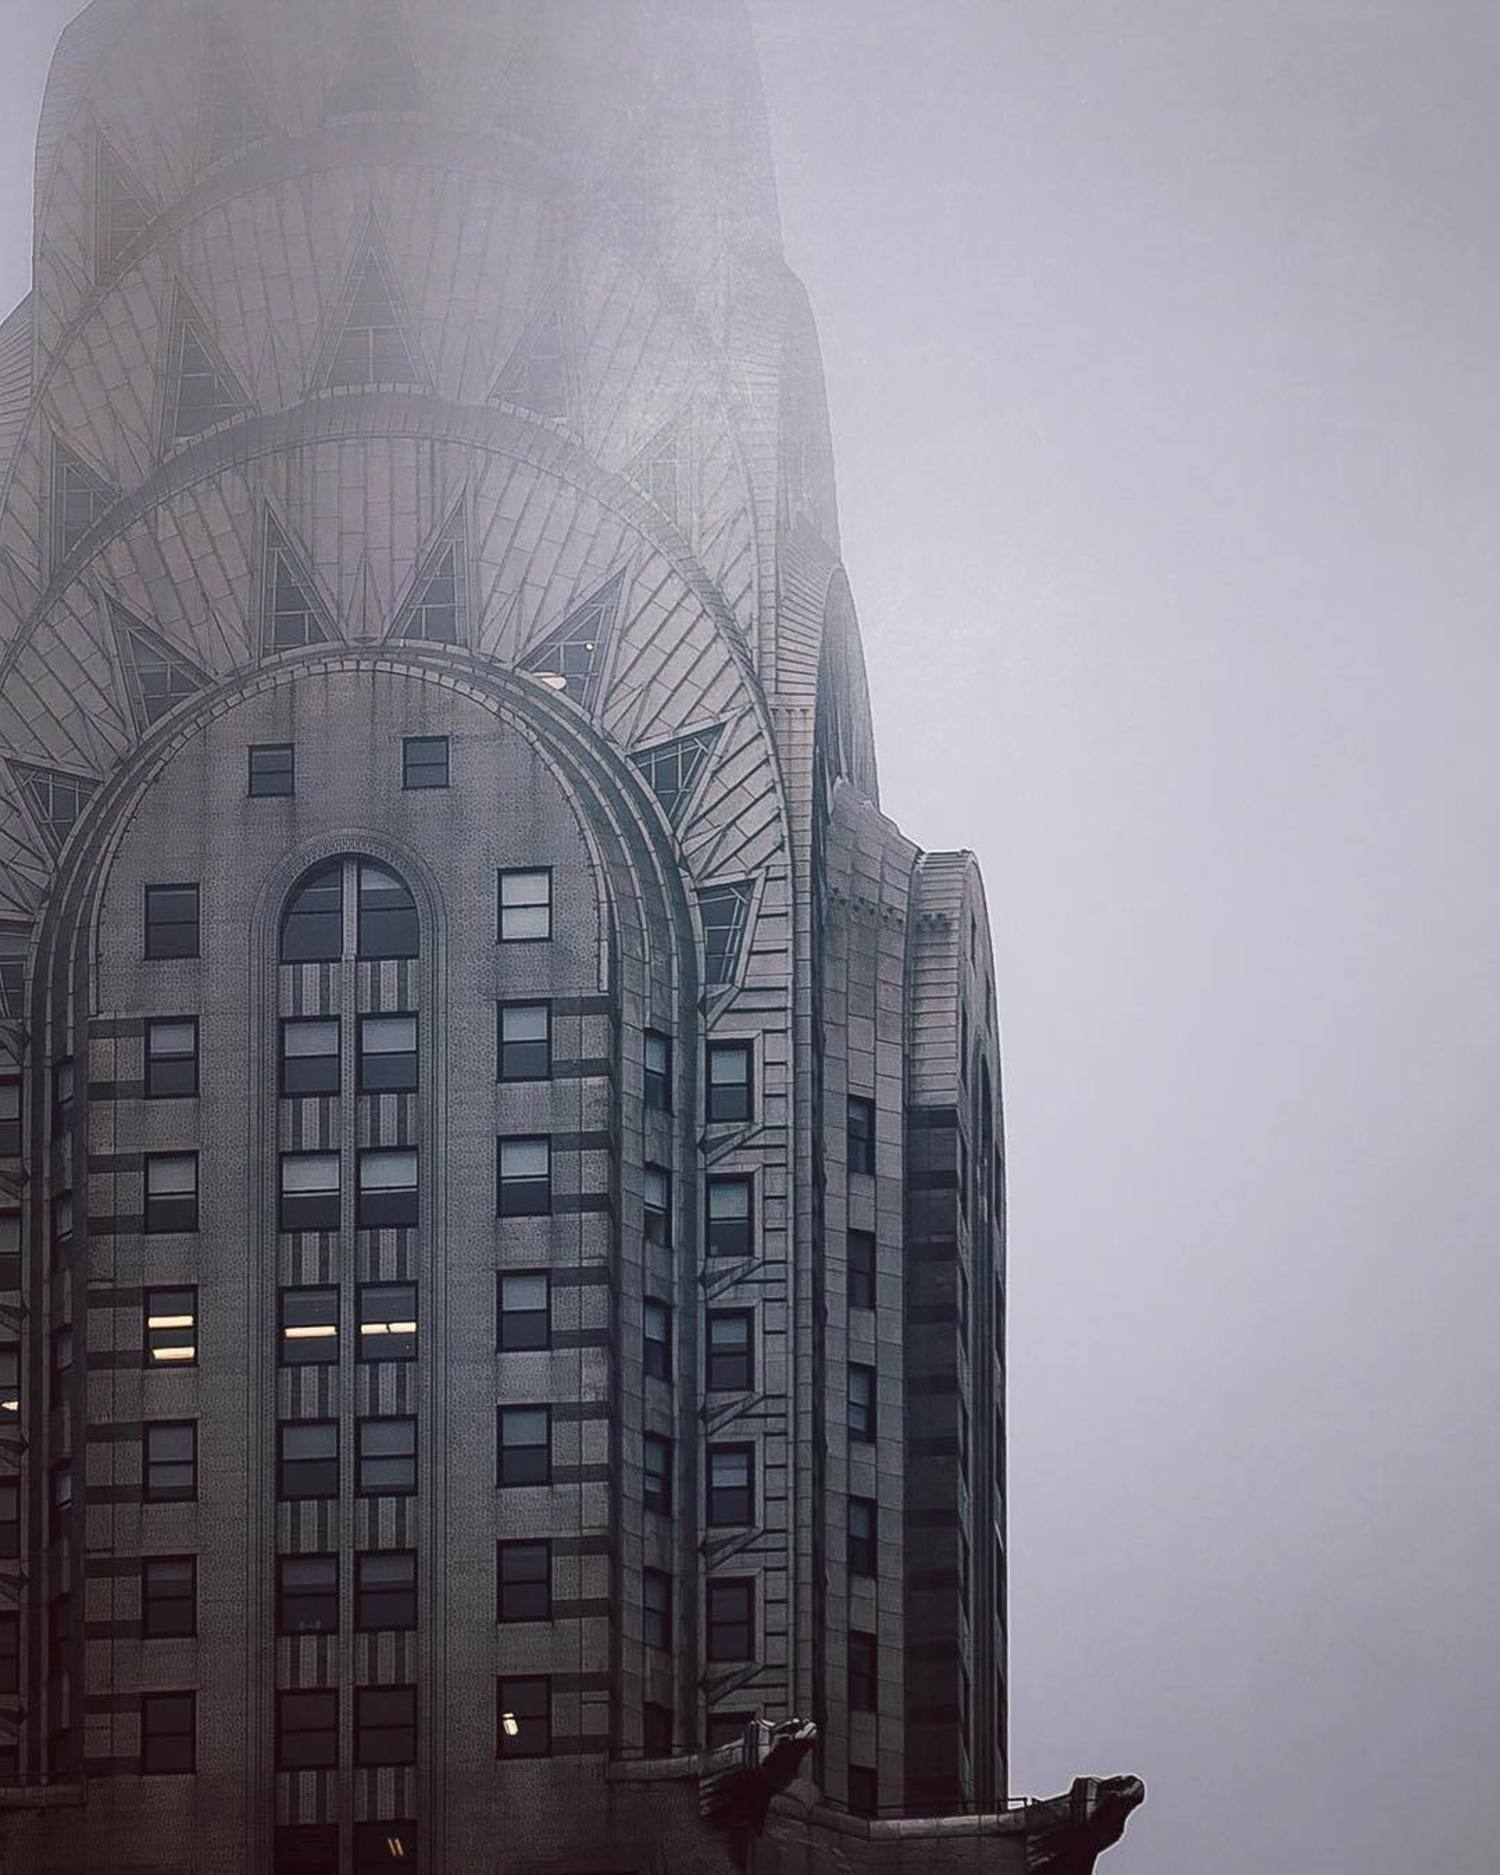 Chrysler Building, New York. Photo via @danwag #viewingnyc #newyork #newyorkcity #nyc #chryslerbuilding